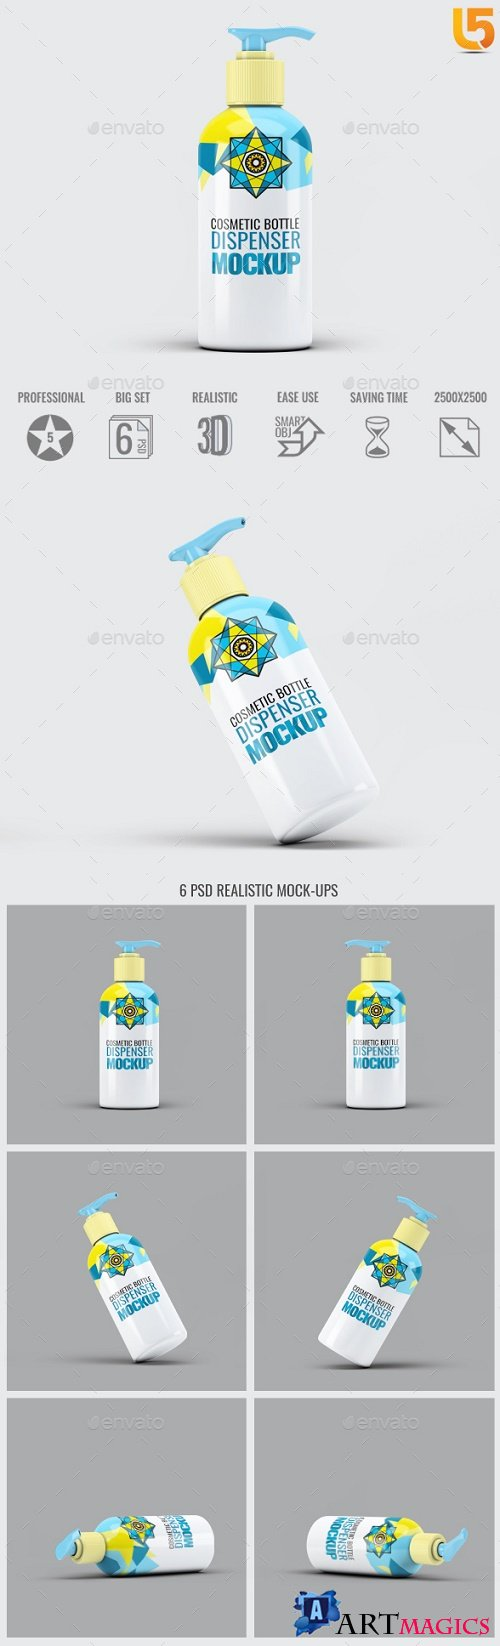 Cosmetic Bottle Dispenser Mock-Up V.4 - 20590295